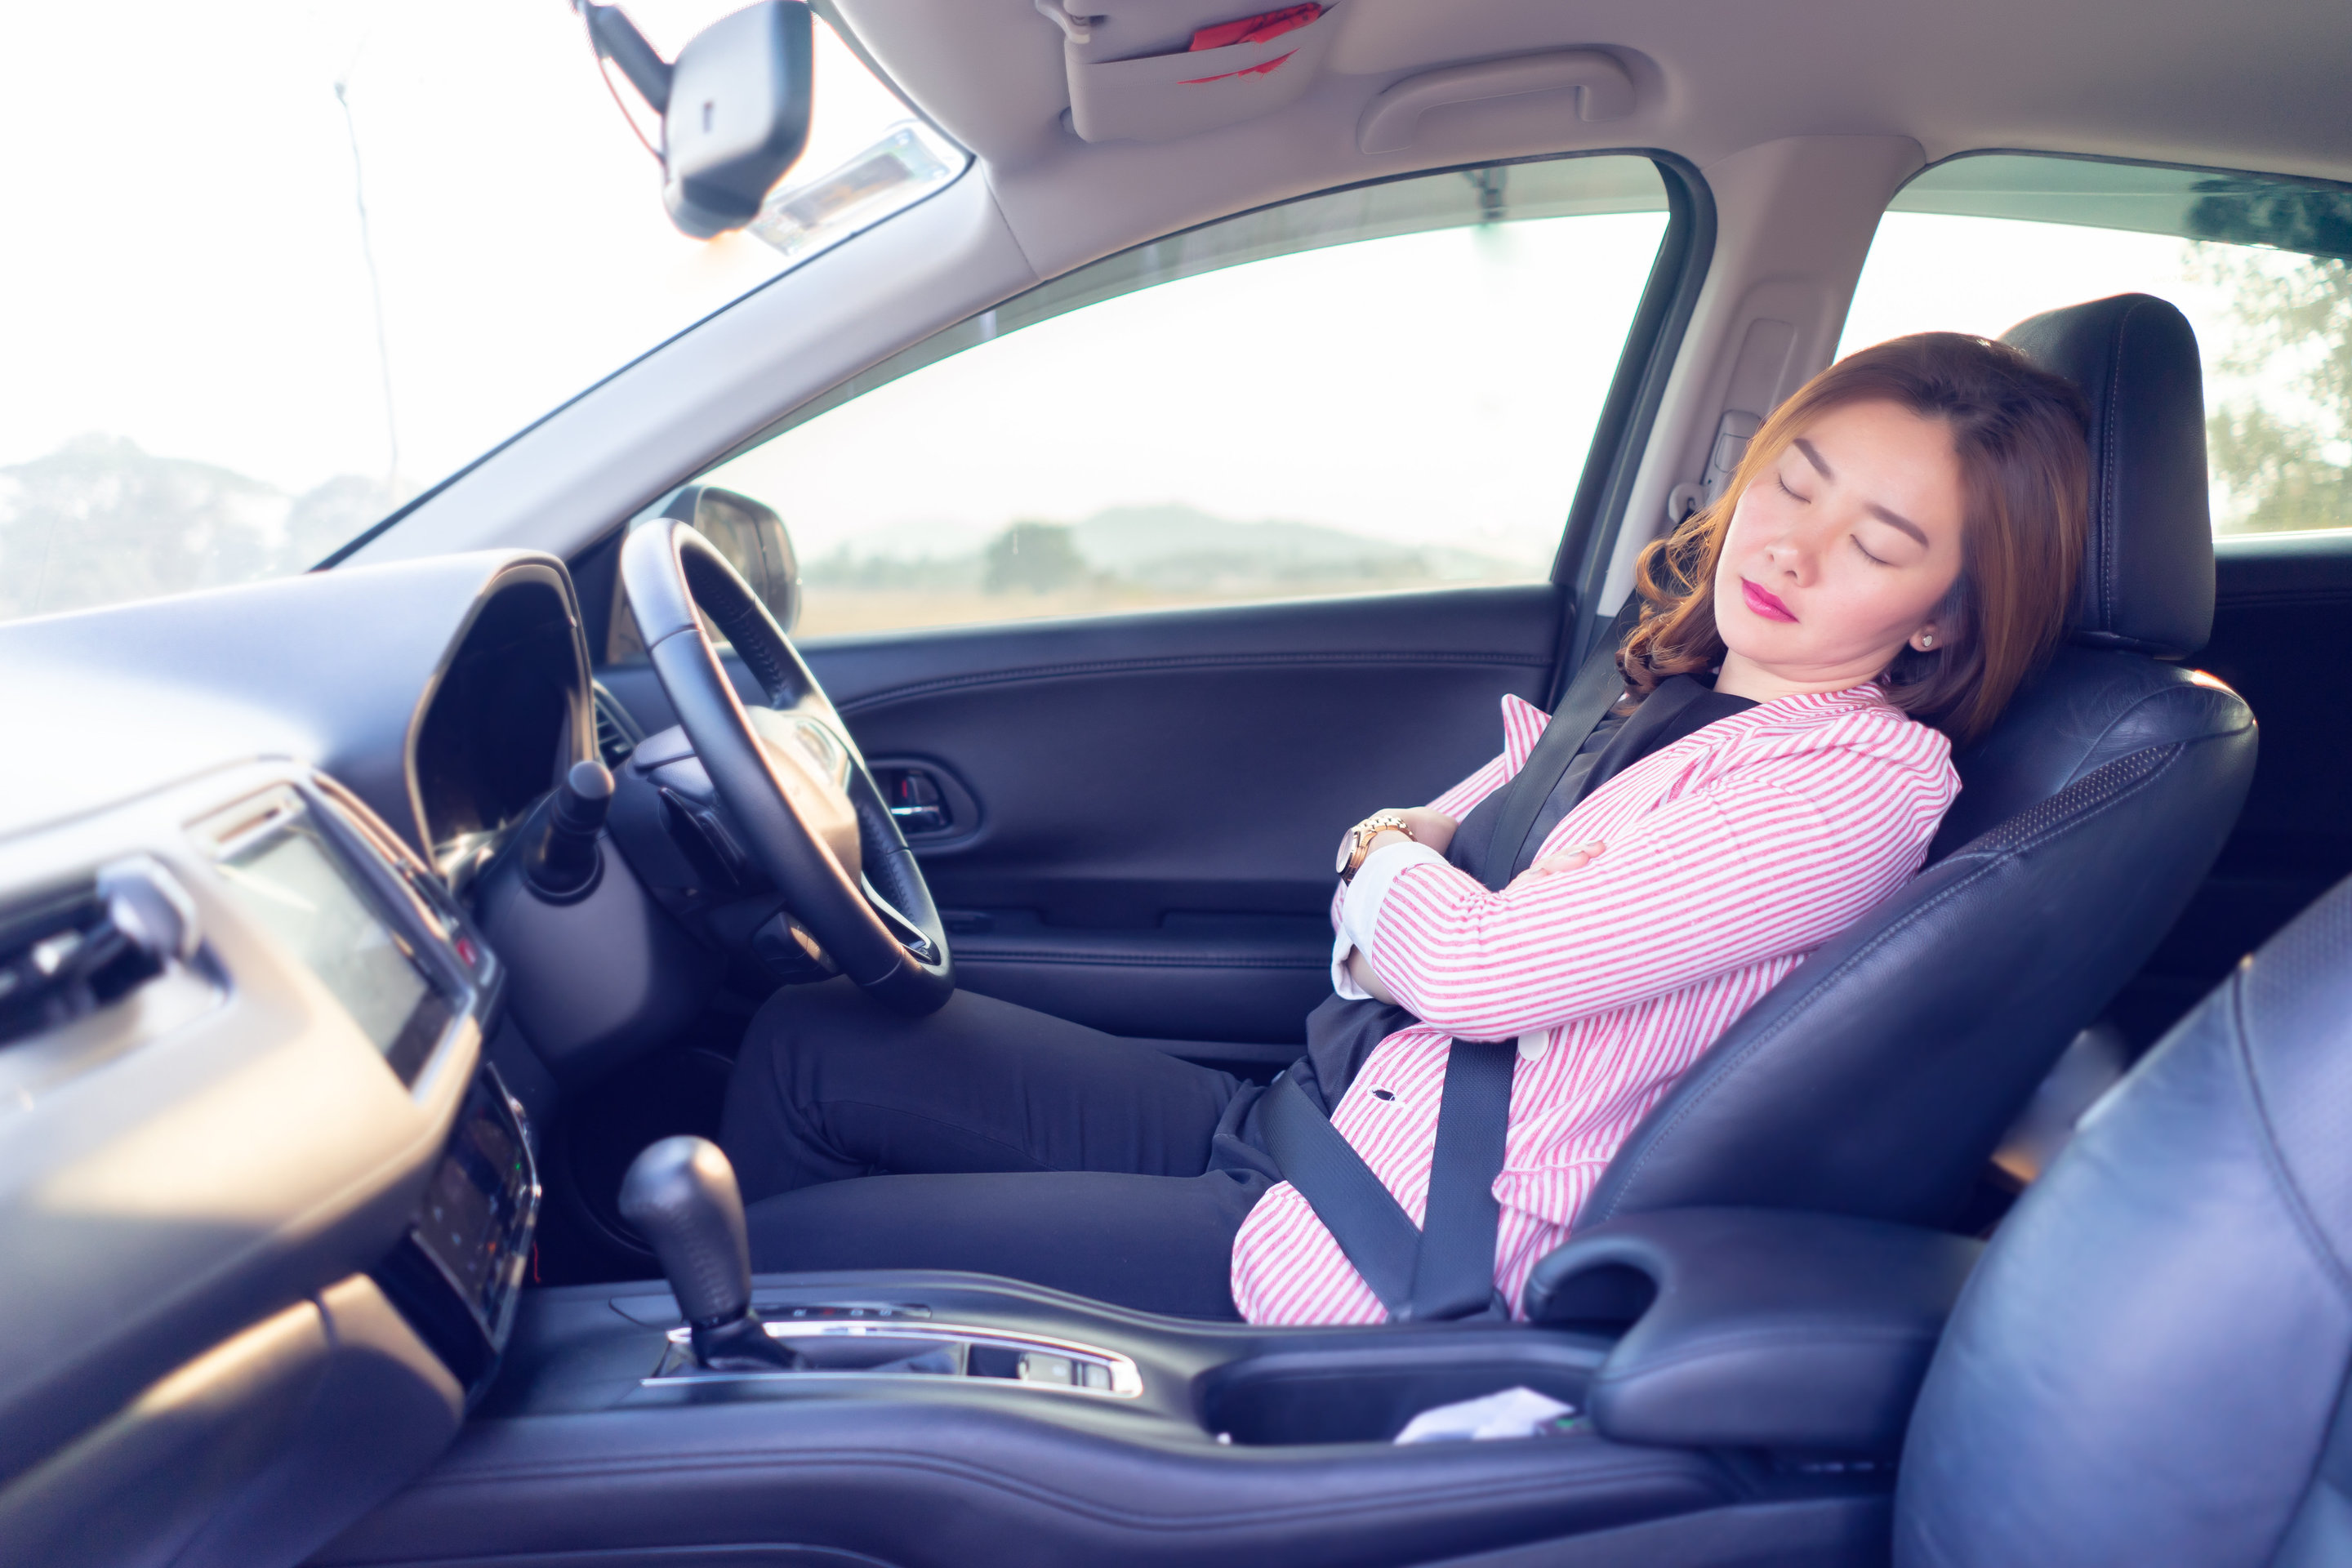 automated vehicles may encourage a new breed of distracted drivers